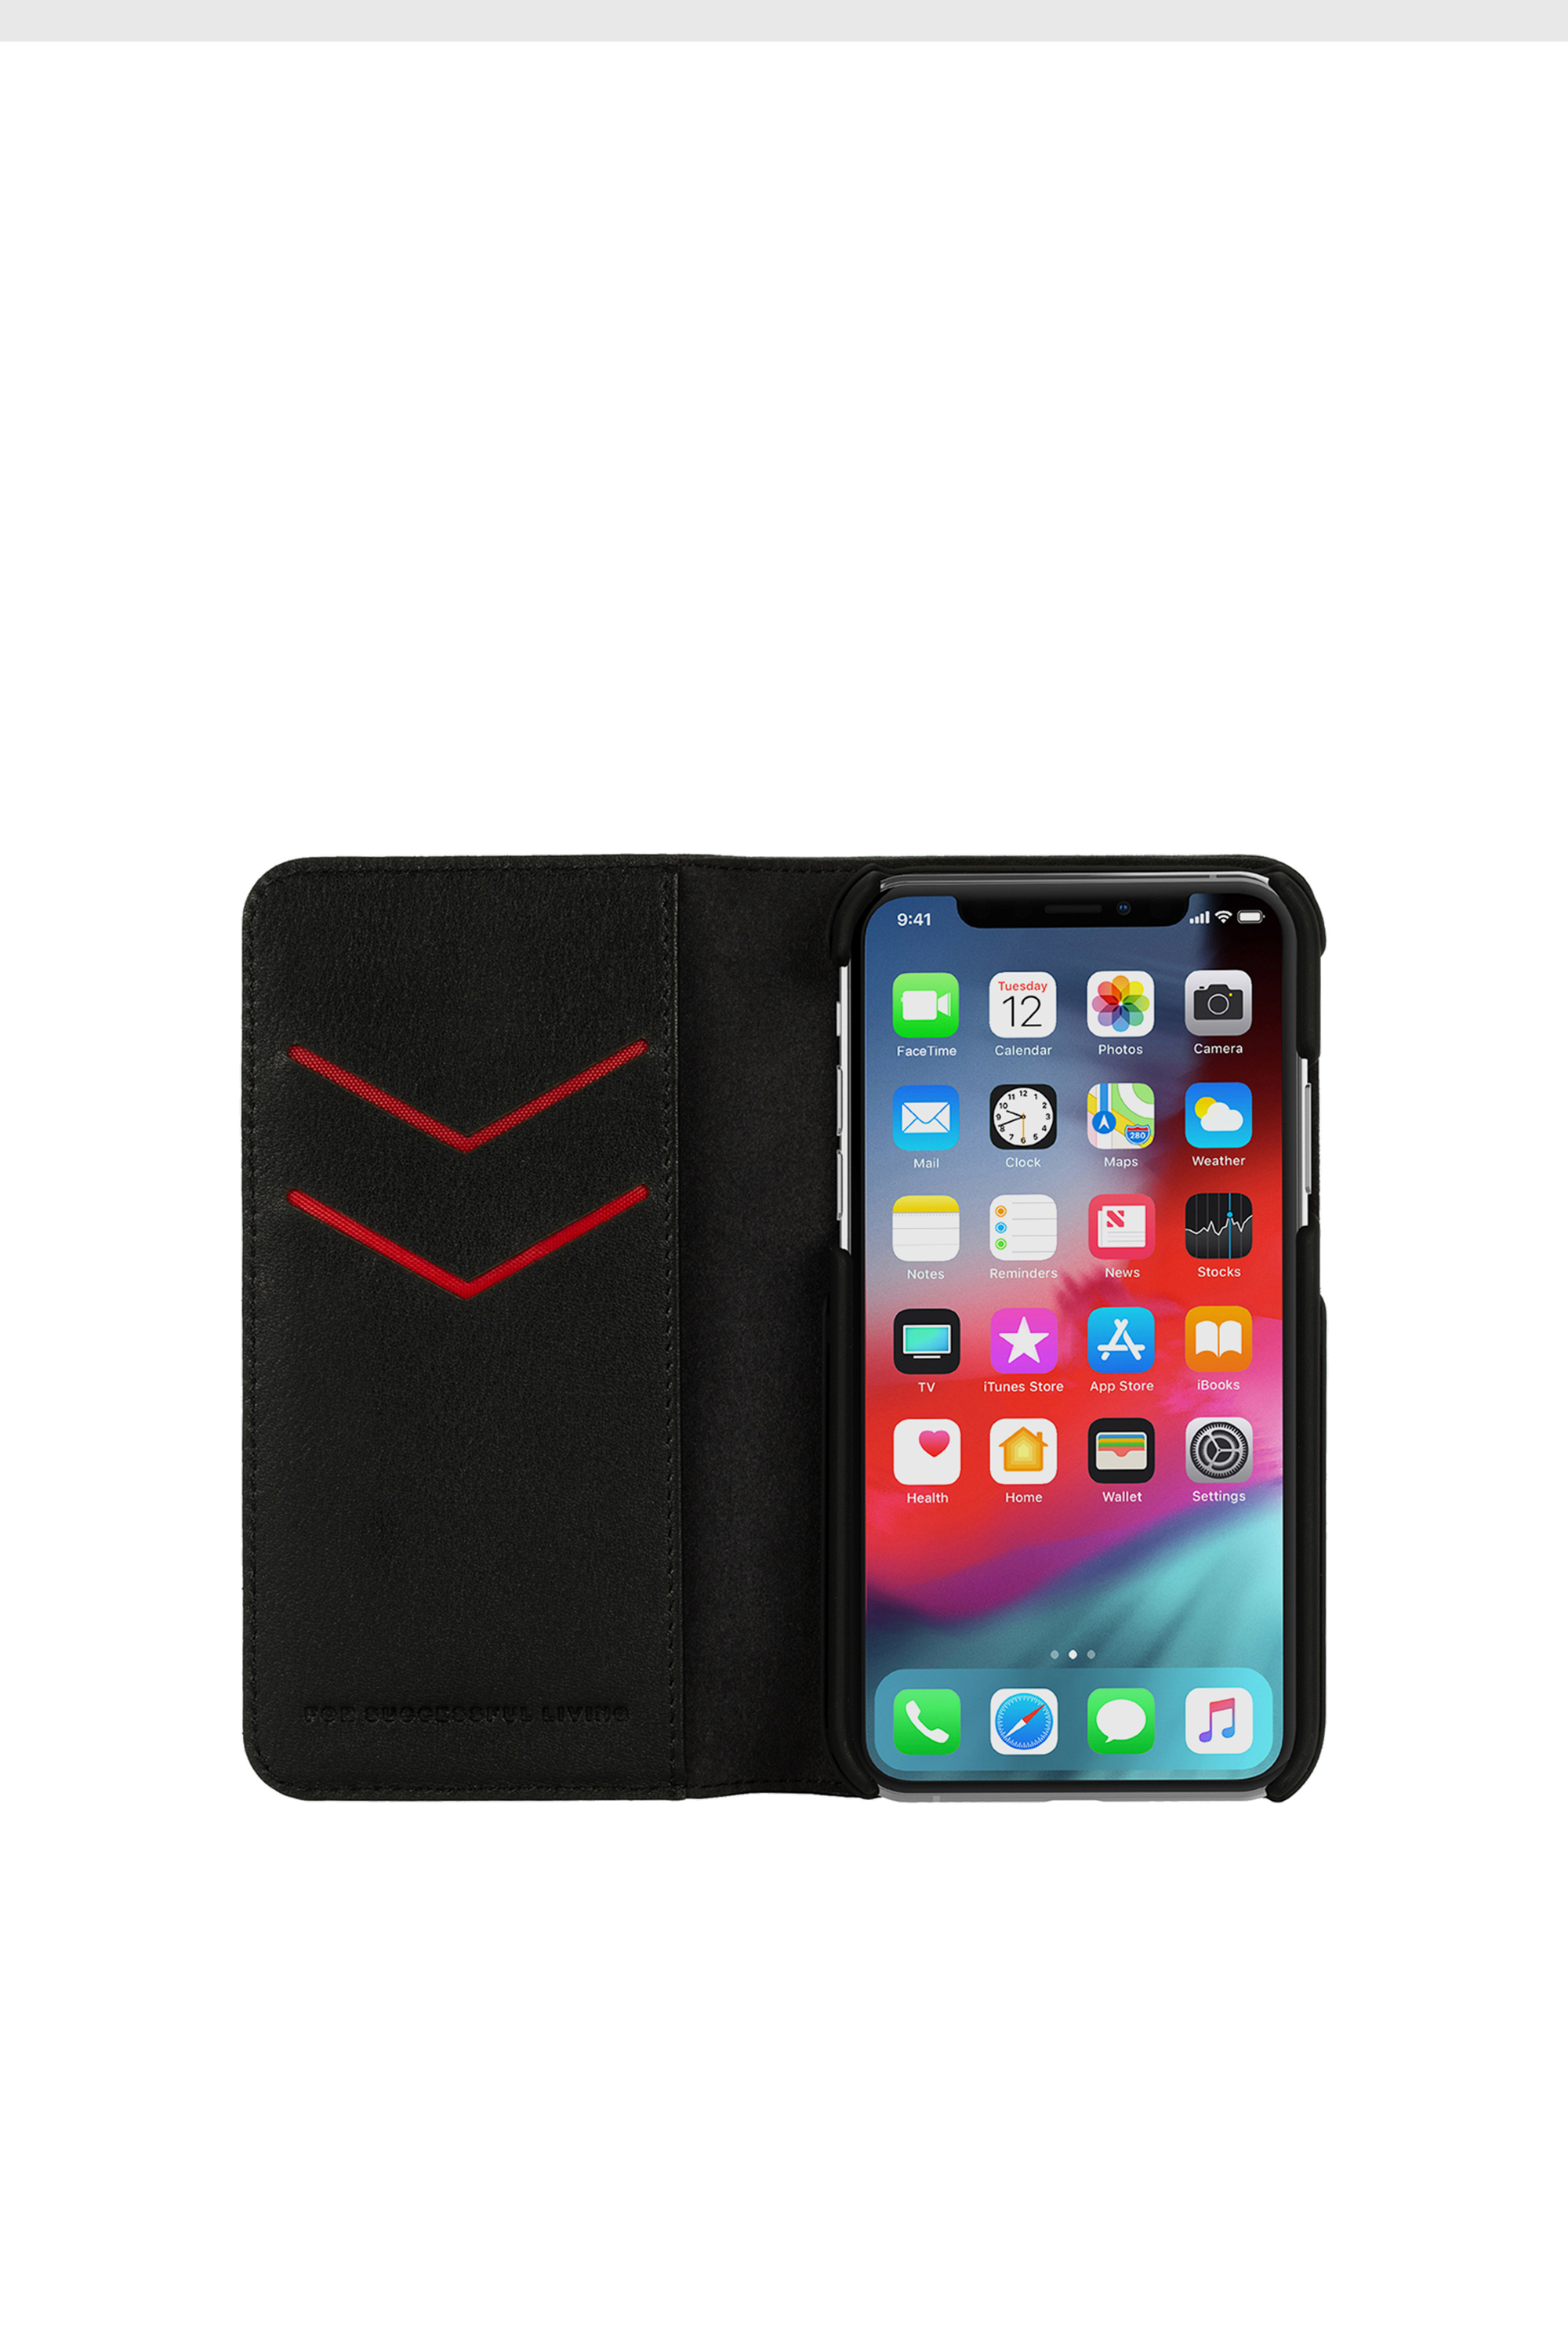 Diesel - DIESEL 2-IN-1 FOLIO CASE FOR IPHONE XS & IPHONE X,  - Klappcover - Image 6